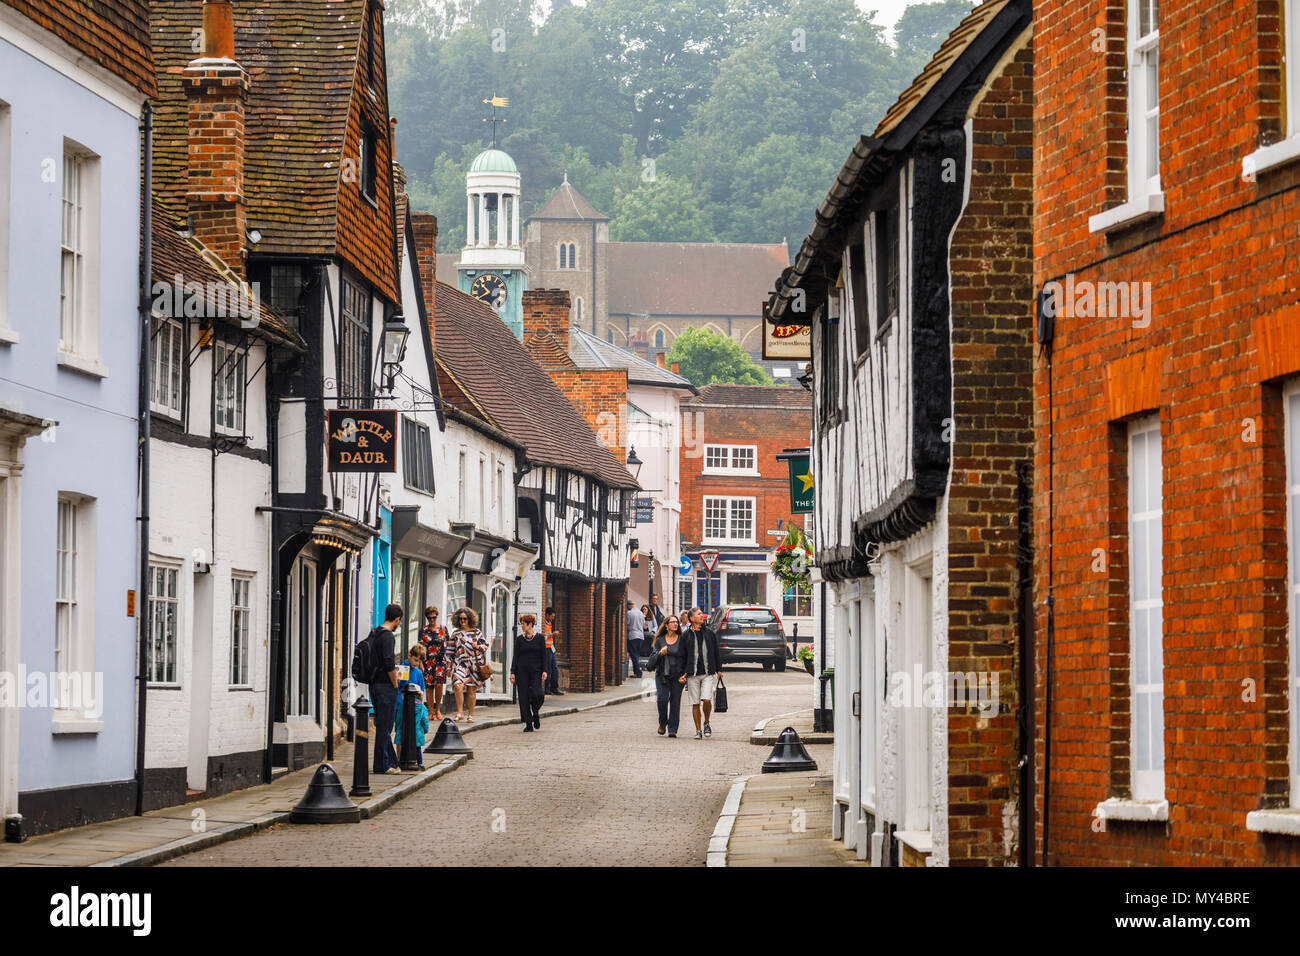 Church Street with old timbered buildings in Godalming, a small historic market town near Guildford, Surrey, southeast England, UK - Stock Image